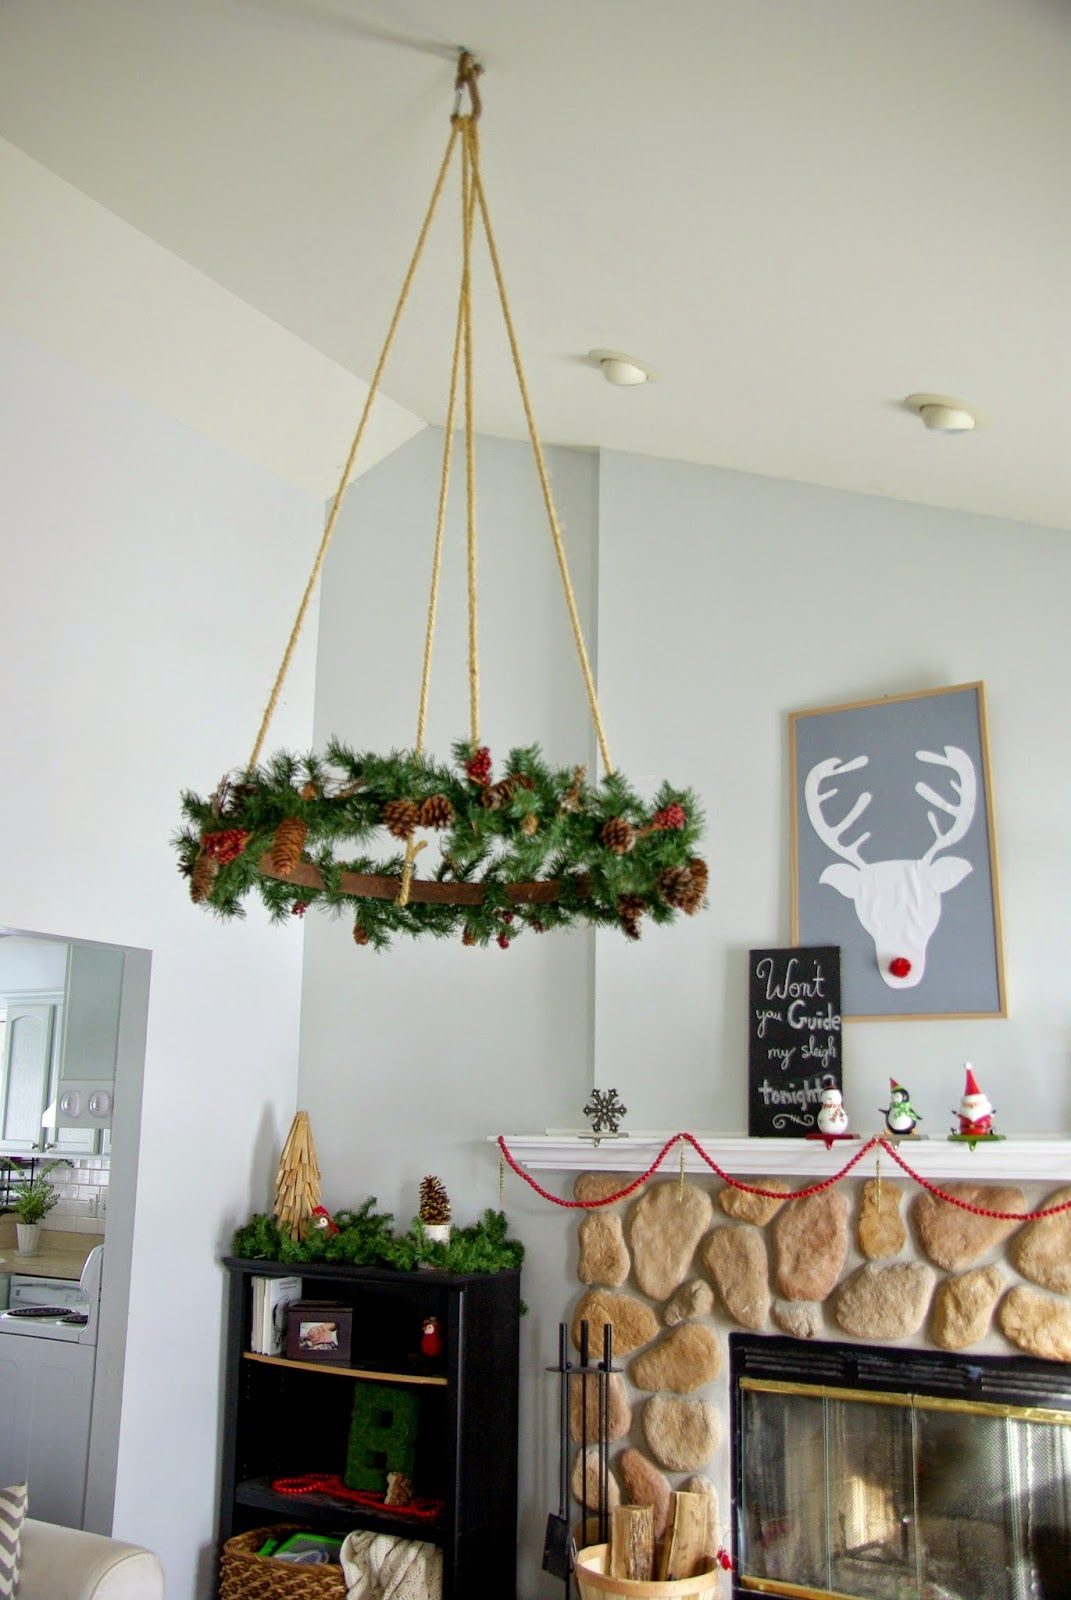 Our house, now a home: Ceiling hanging Christmas wreath #featured ...